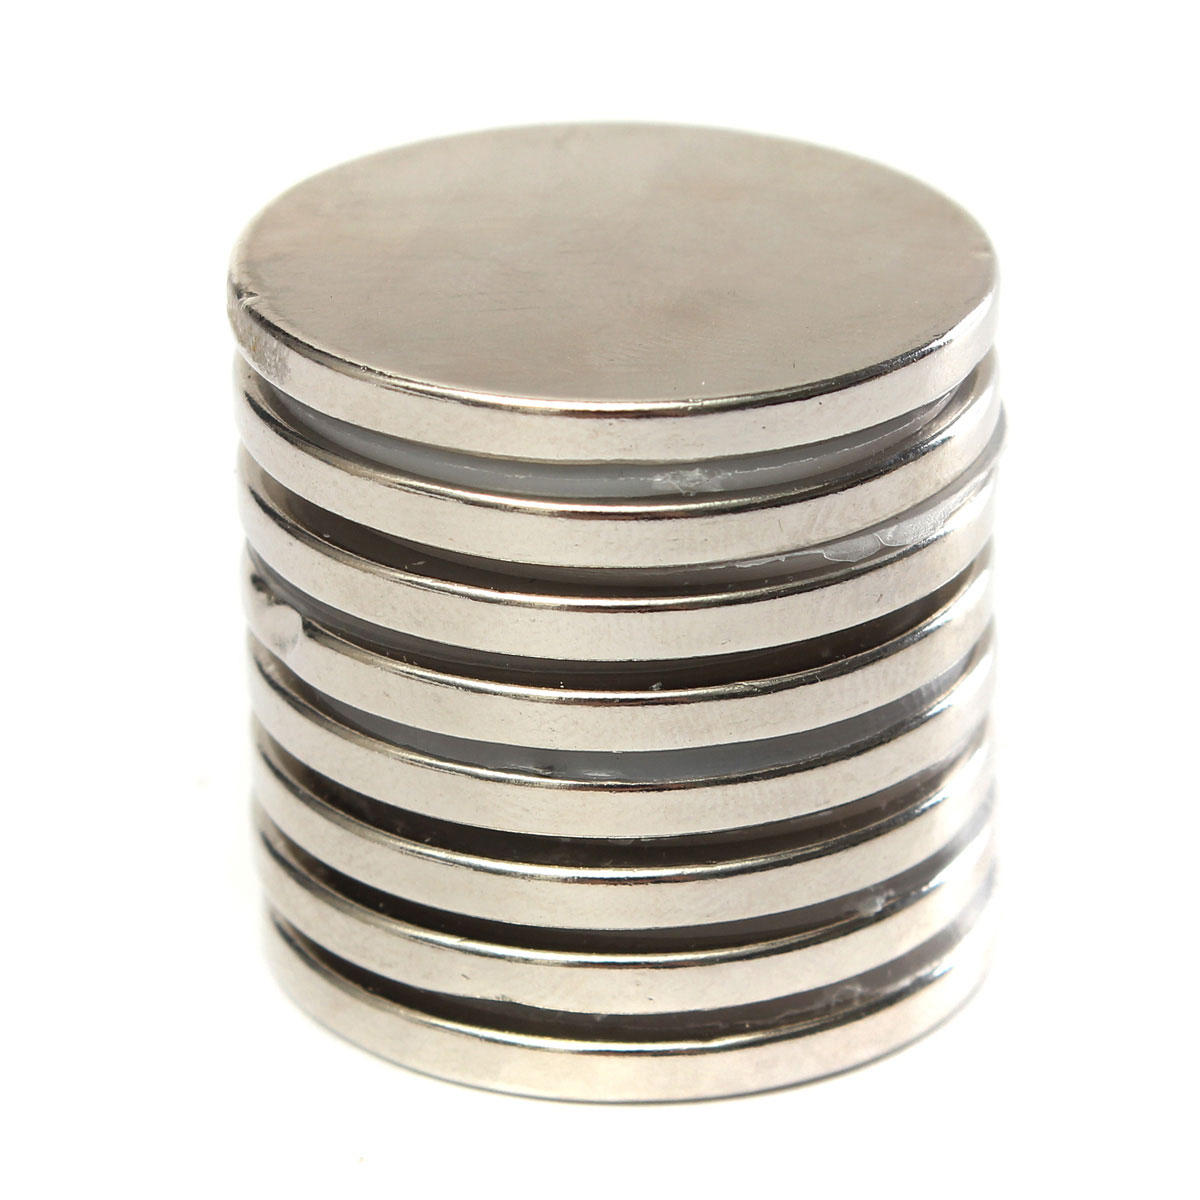 20pcs N50 15x4mm Strong Round Neodymium Magnets 4mm Hole Countersunk Ring Magnet - 3